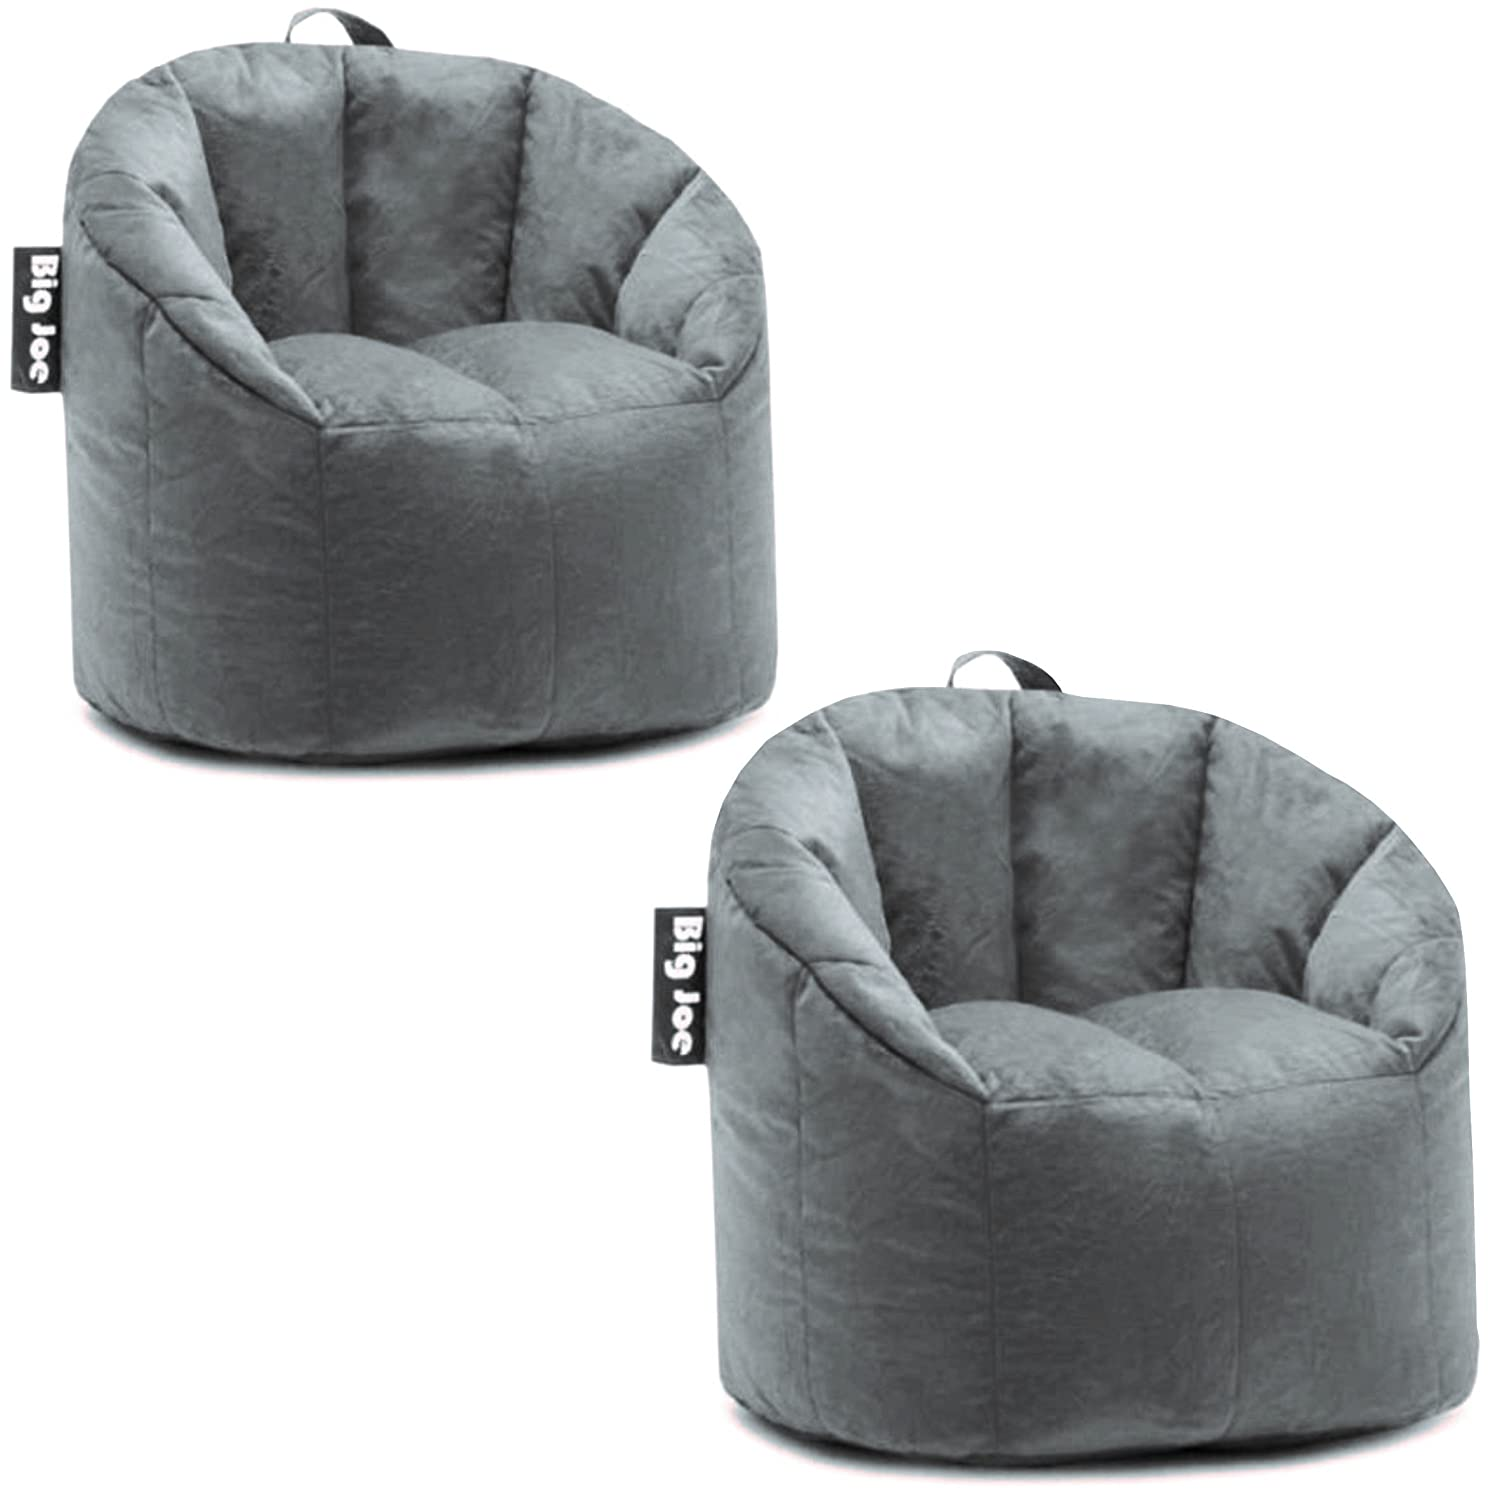 Groovy Big Joe Milano Bean Bag Chair Gray Plush 32 X 28 X 25 Short Links Chair Design For Home Short Linksinfo